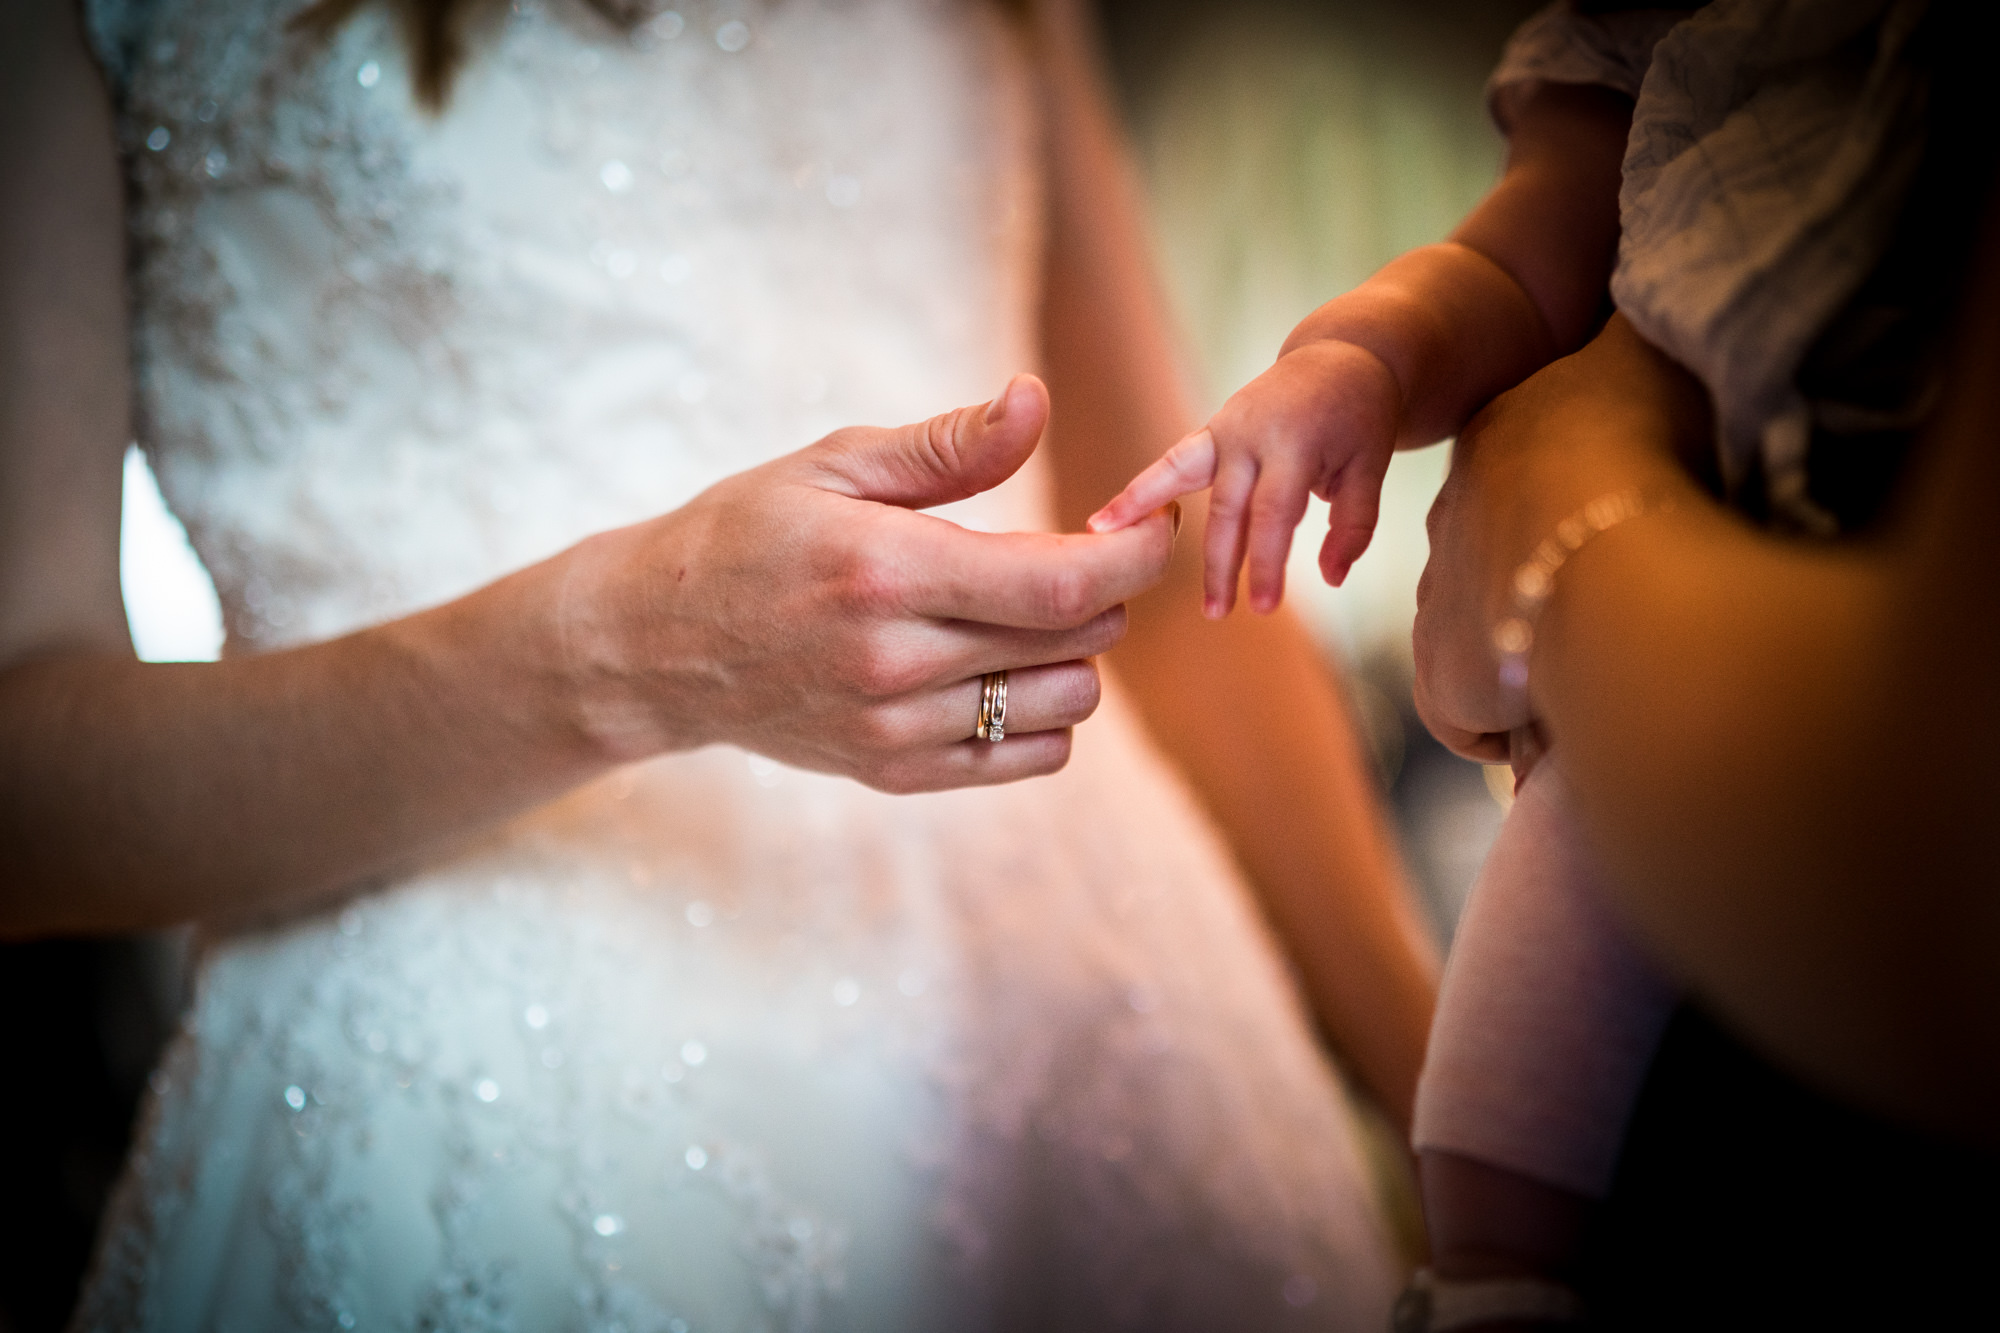 Small moments. Tight framing to highlight a lovely moment between bride and nephew.